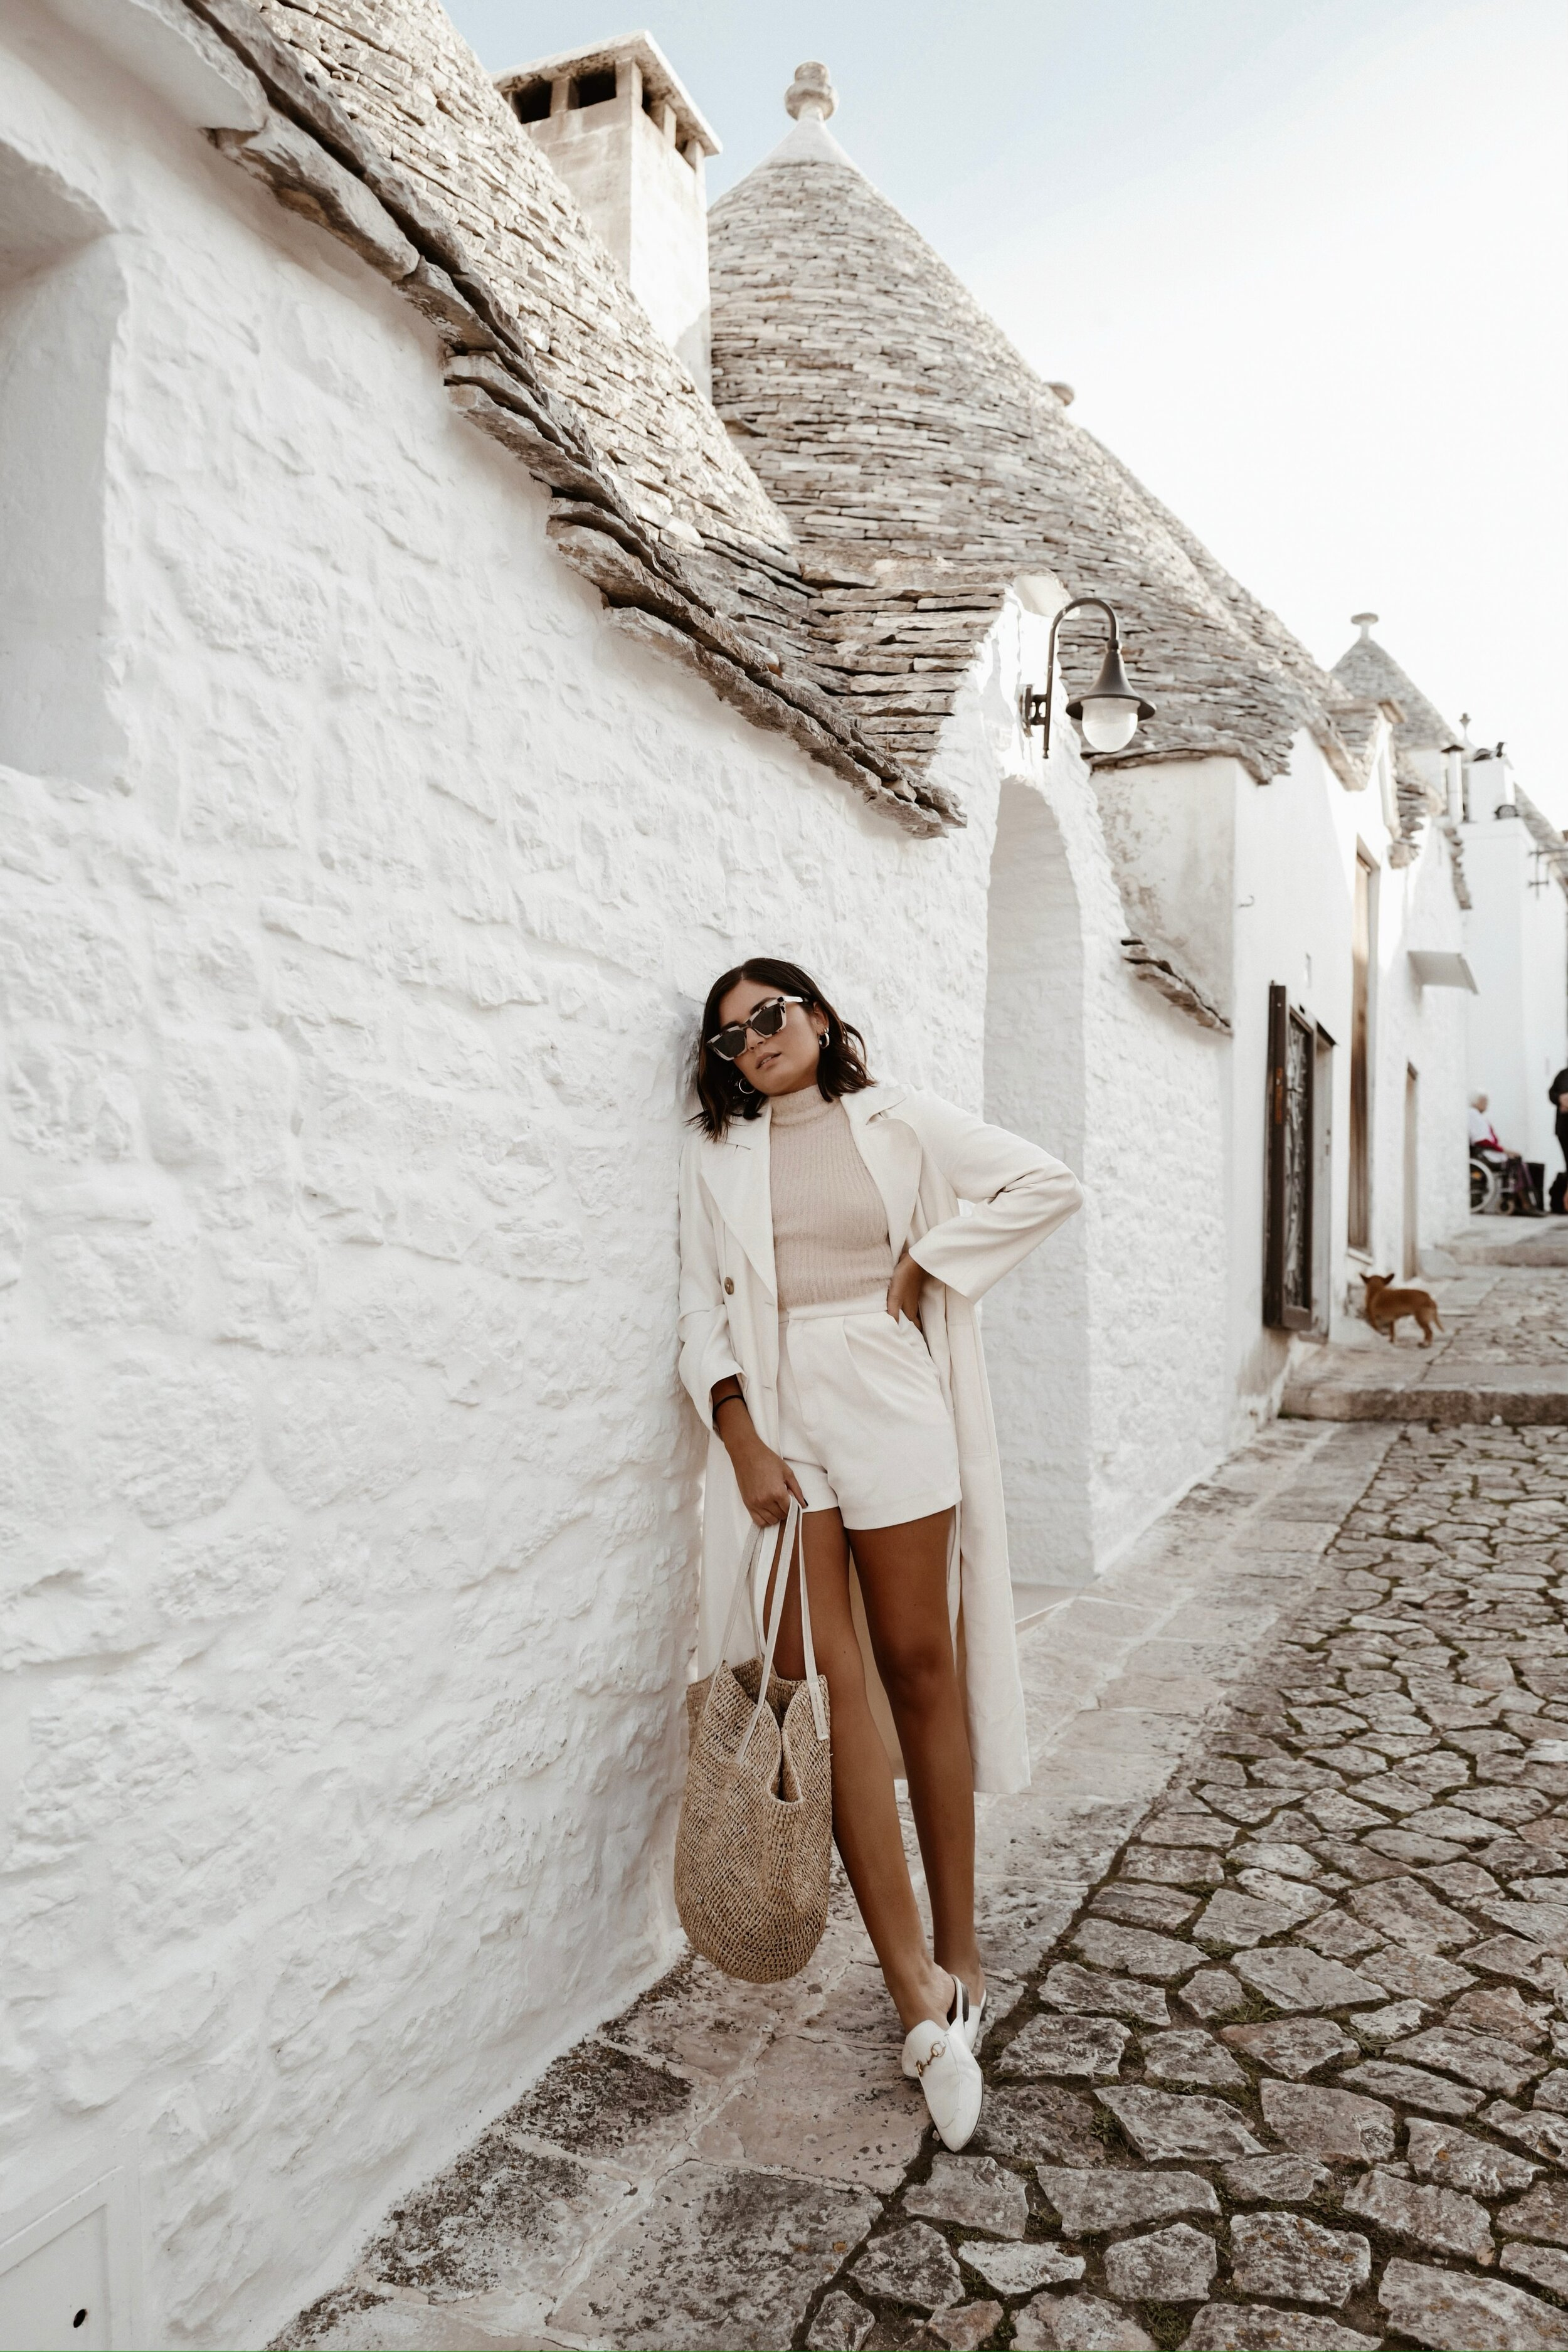 - Explore Puglia & the surrounding towns - we had so much fun & loved site seeing in Alberobello (looks like out of a movie scene)